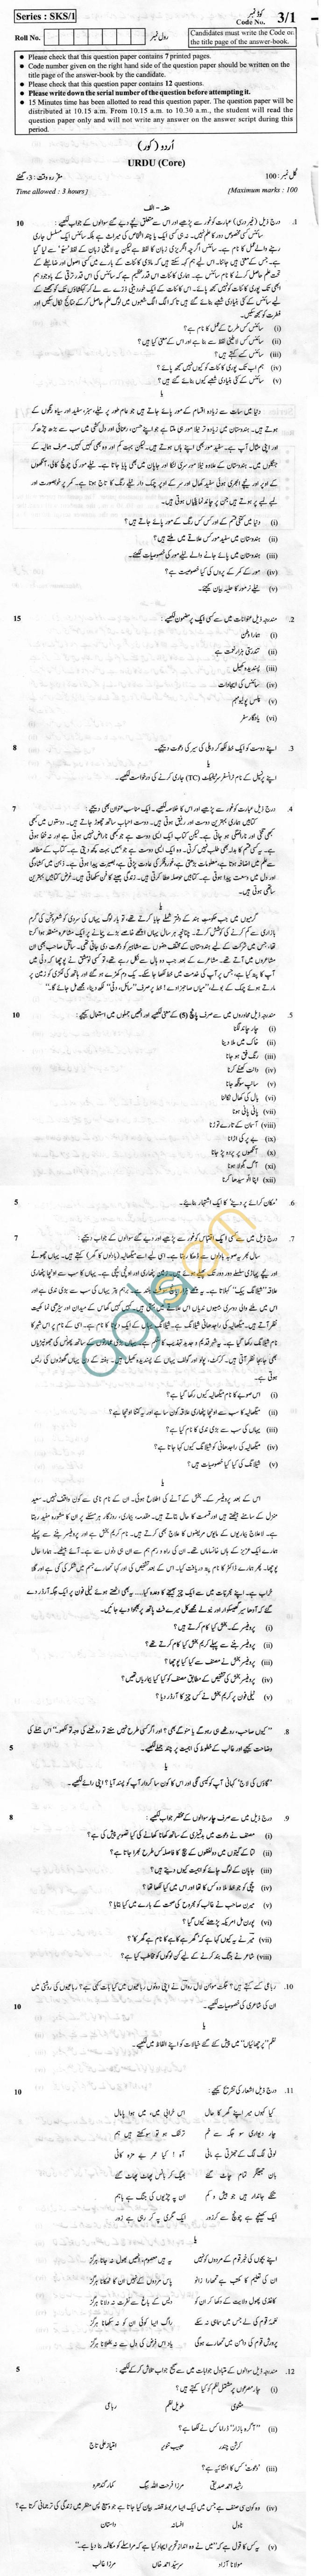 CBSE Board Exam 2013 Class XII Question Paper - Urdu (Core)